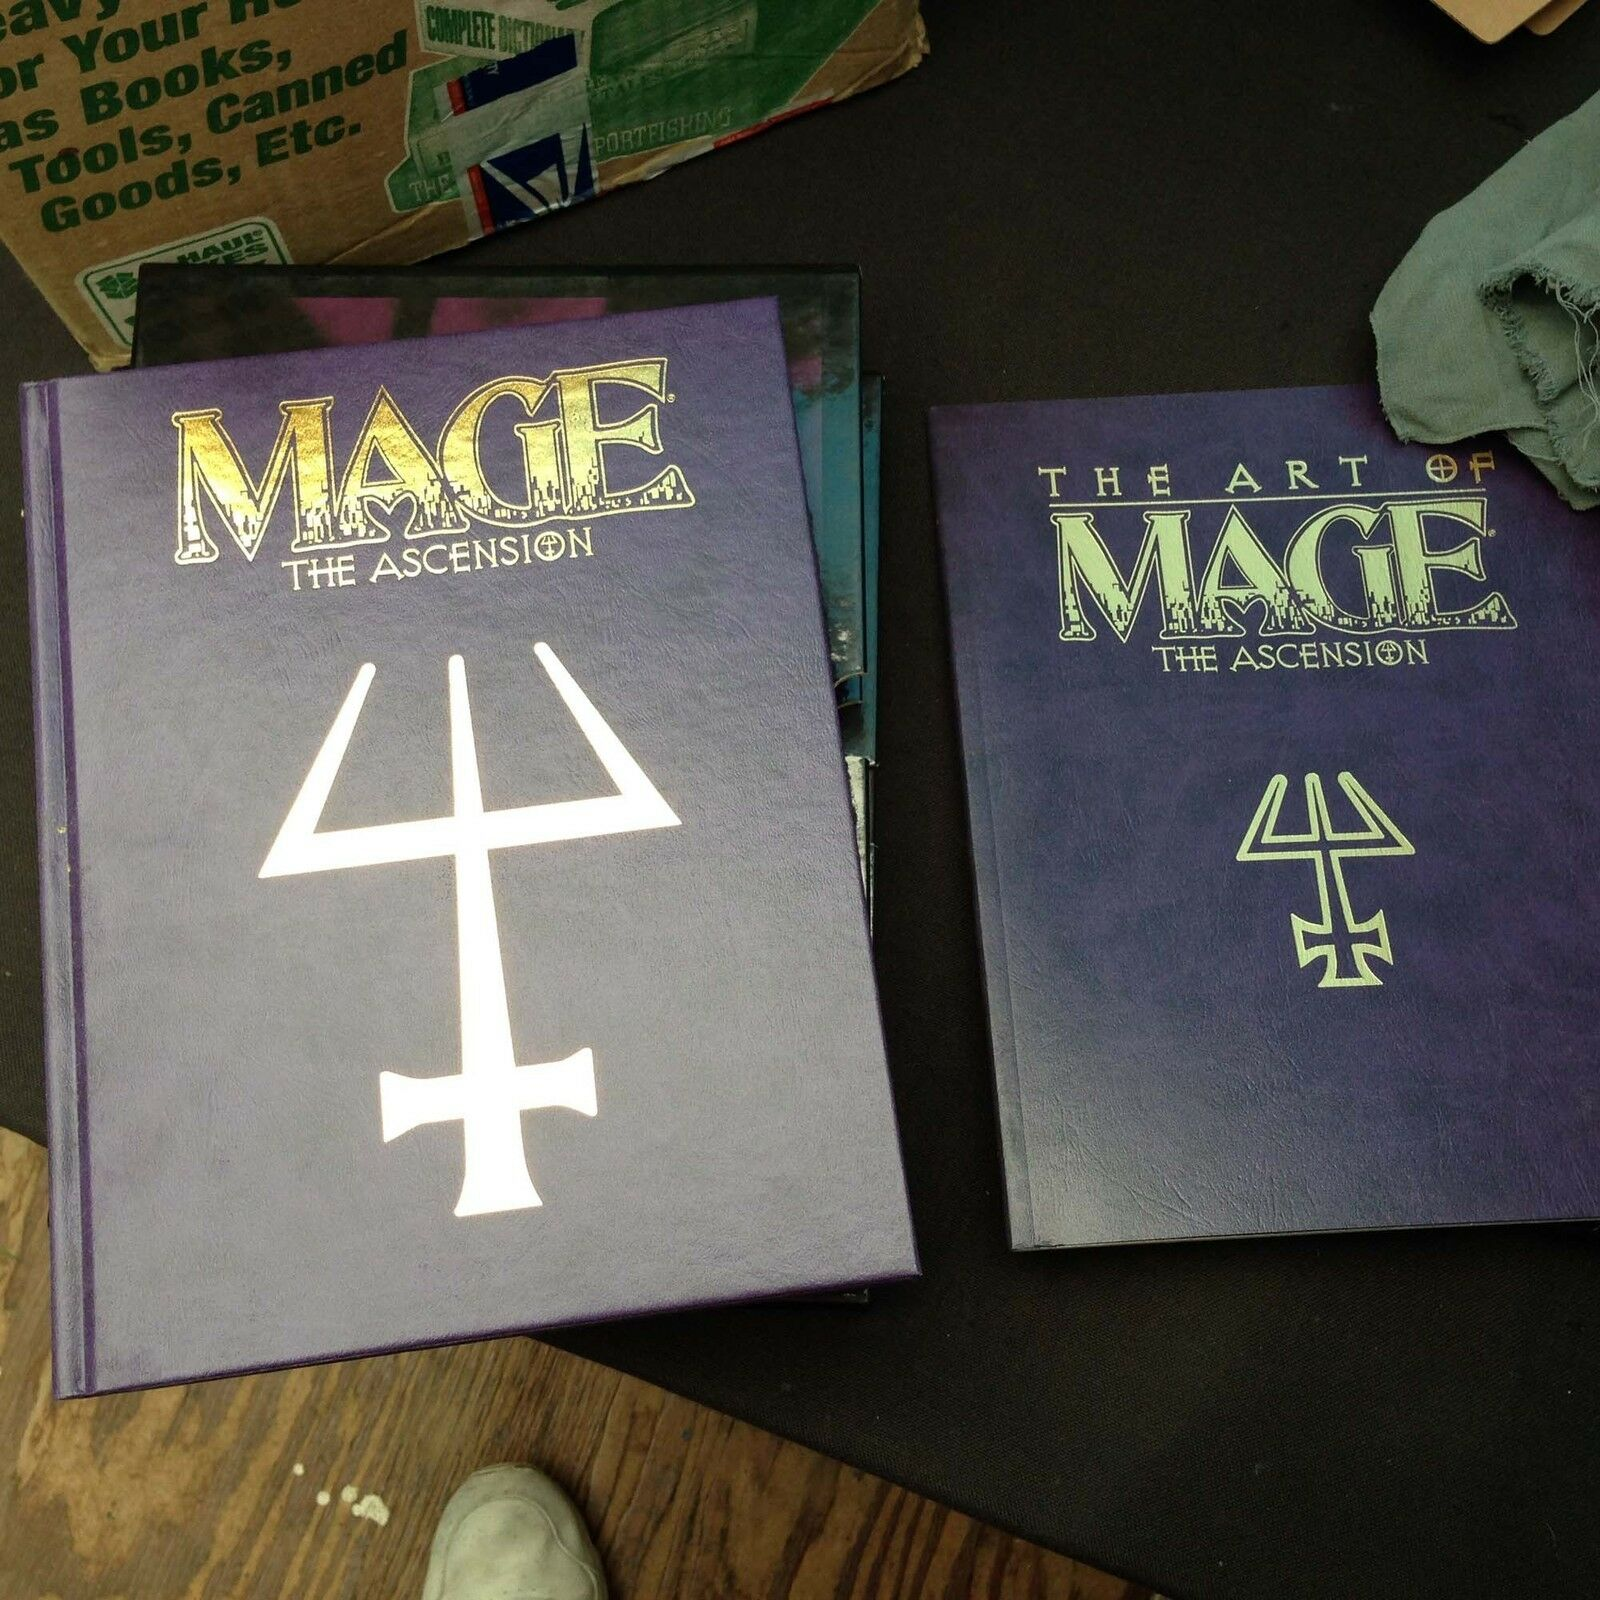 MAGE The Ascension Special Box Set (2 books- Ascension Ascension Ascension and The ART of Mage) New 719141